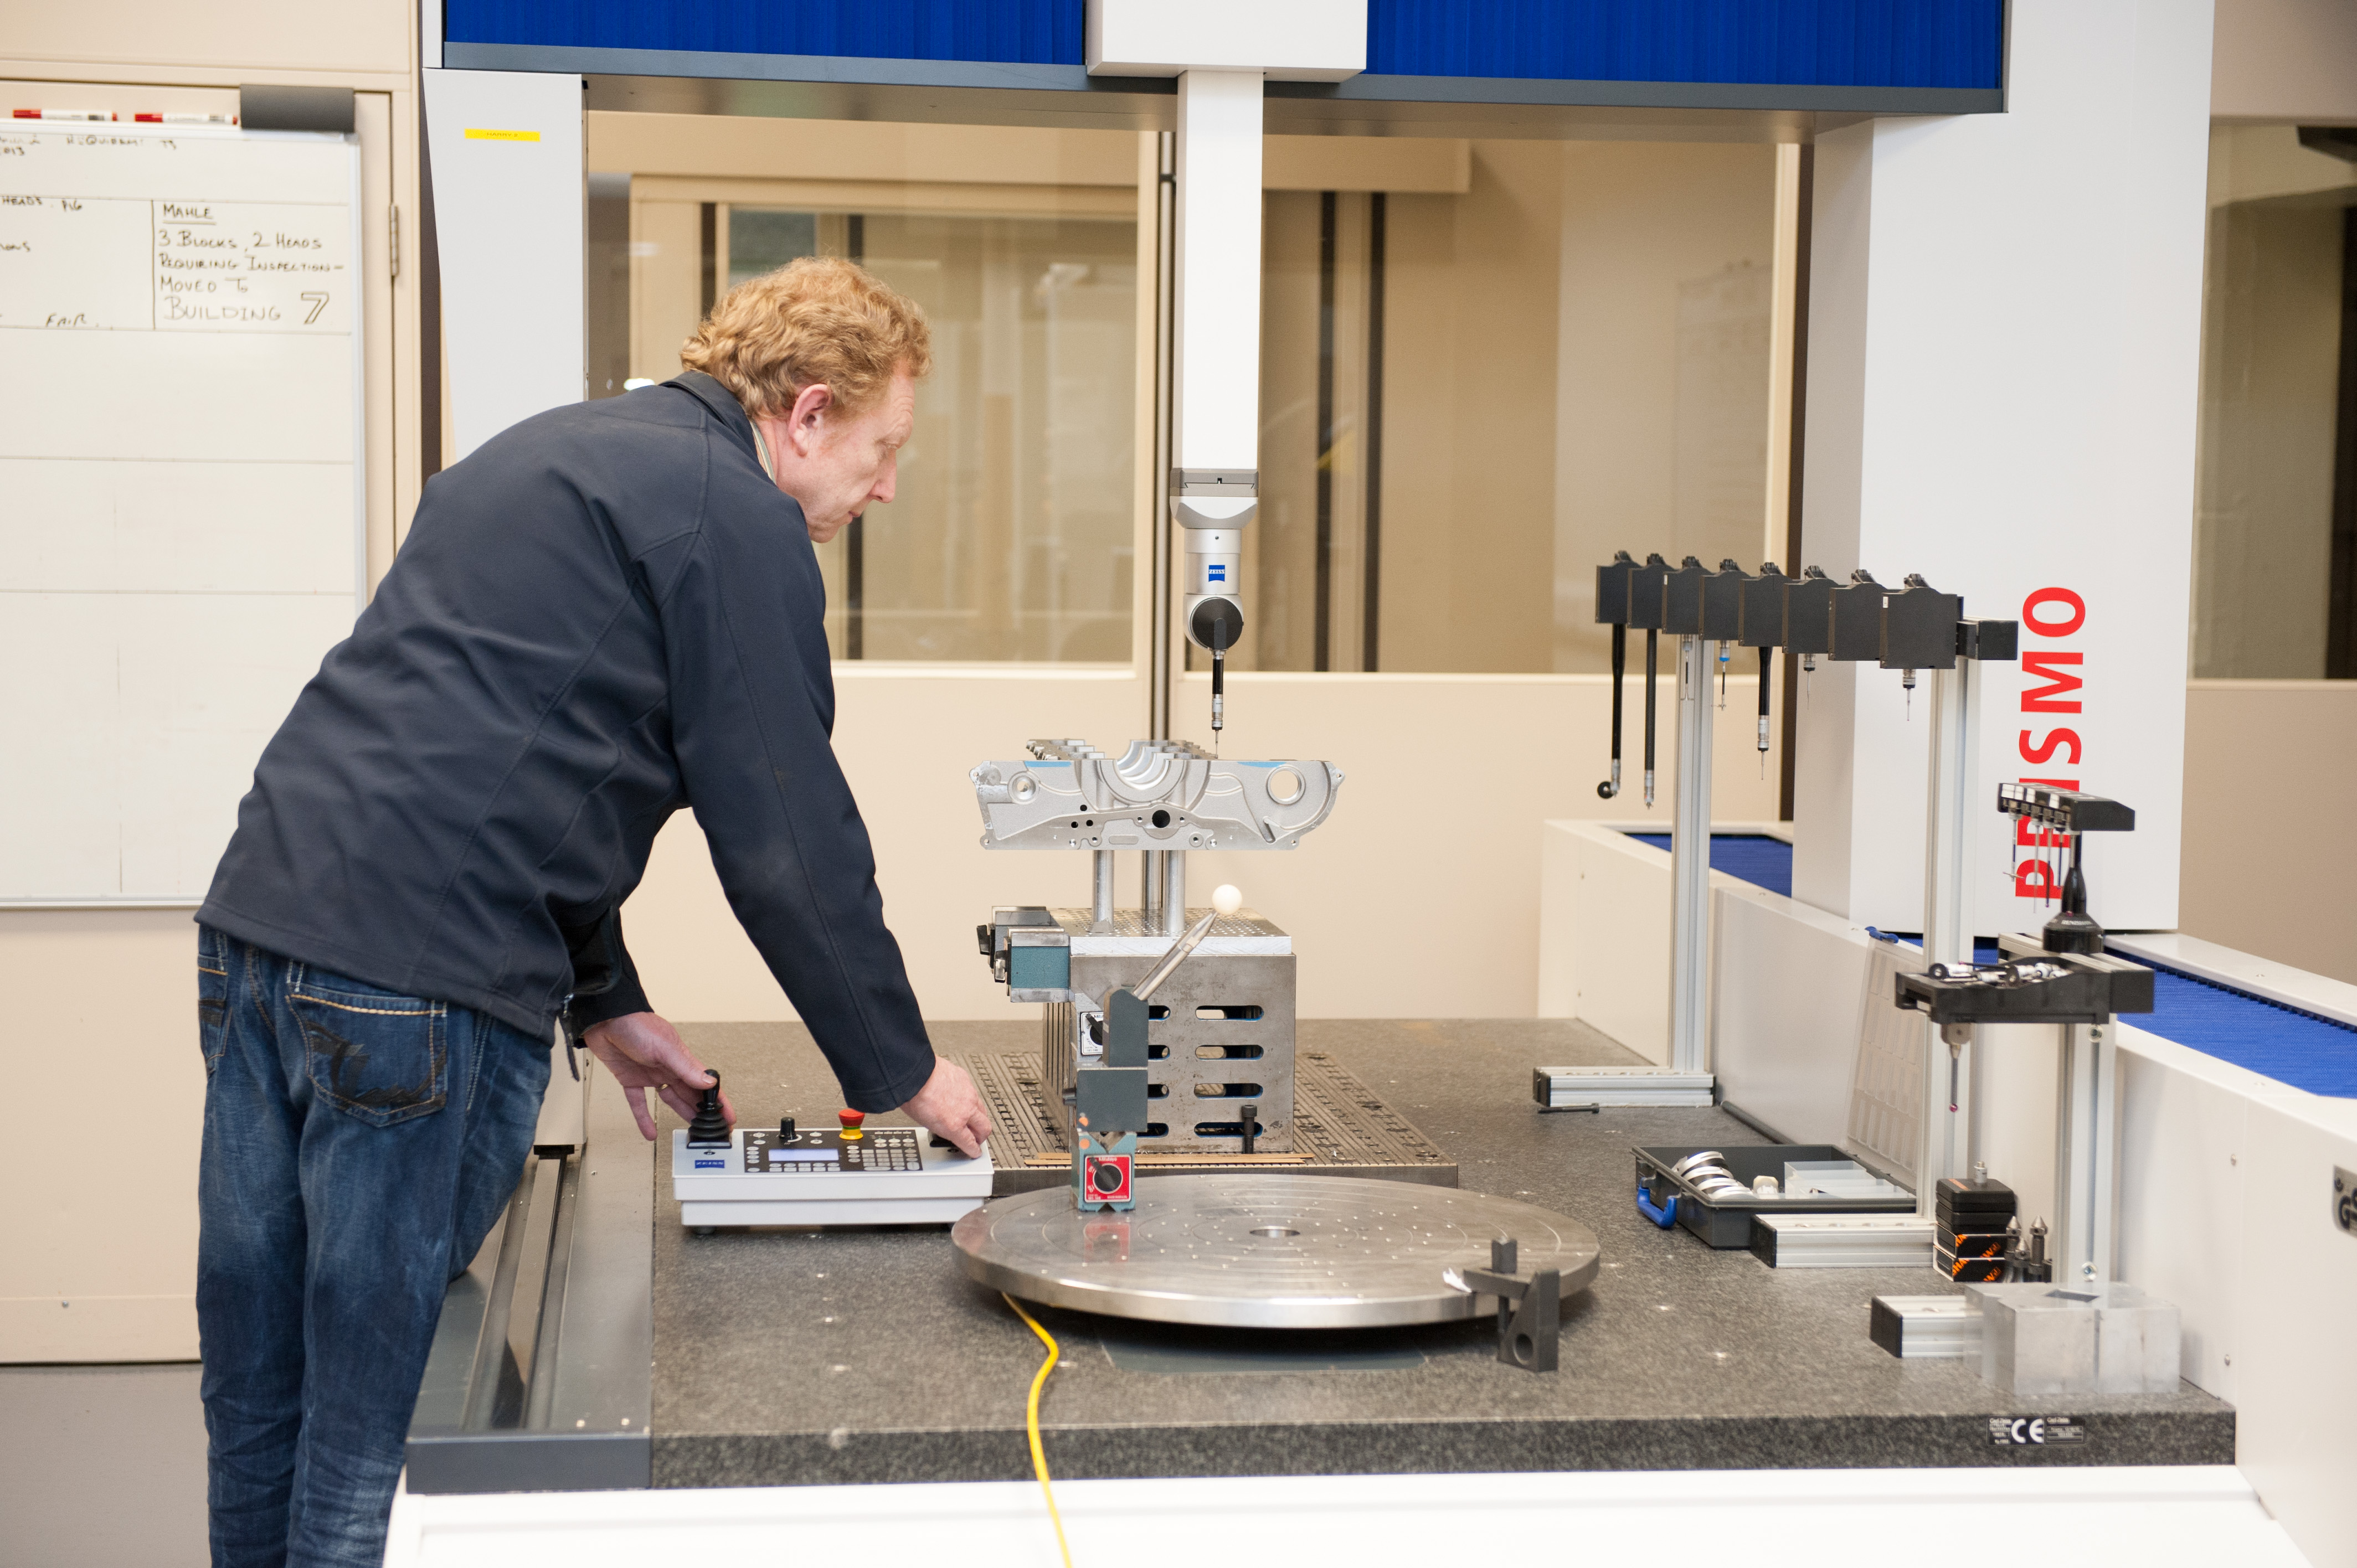 Ilmor has a well-equiped metrology suite